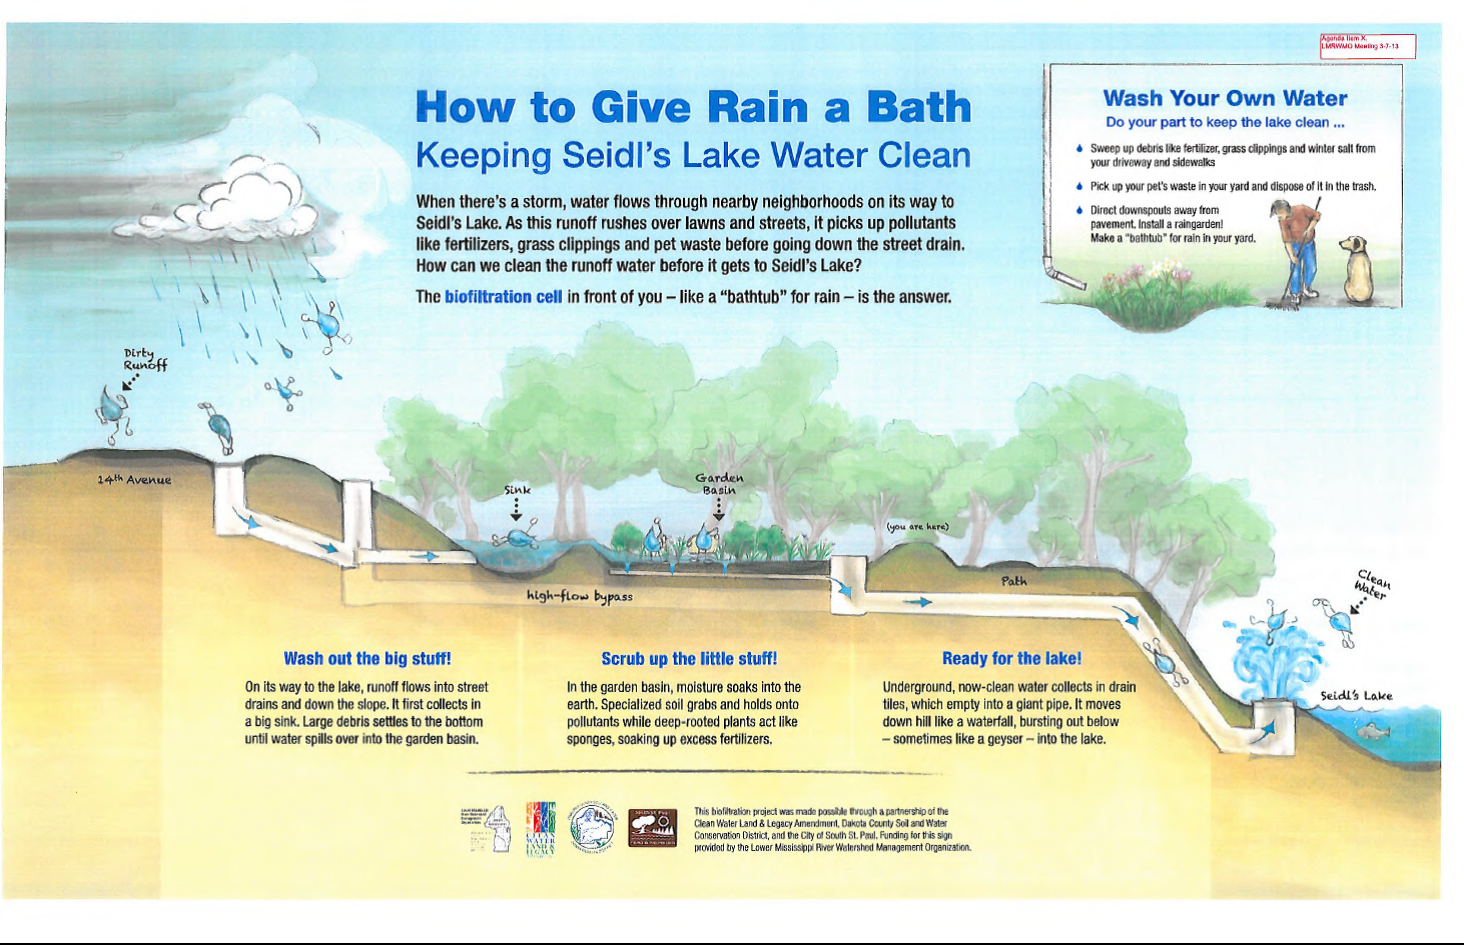 How to Give Rain a Bath - Seidles Lake